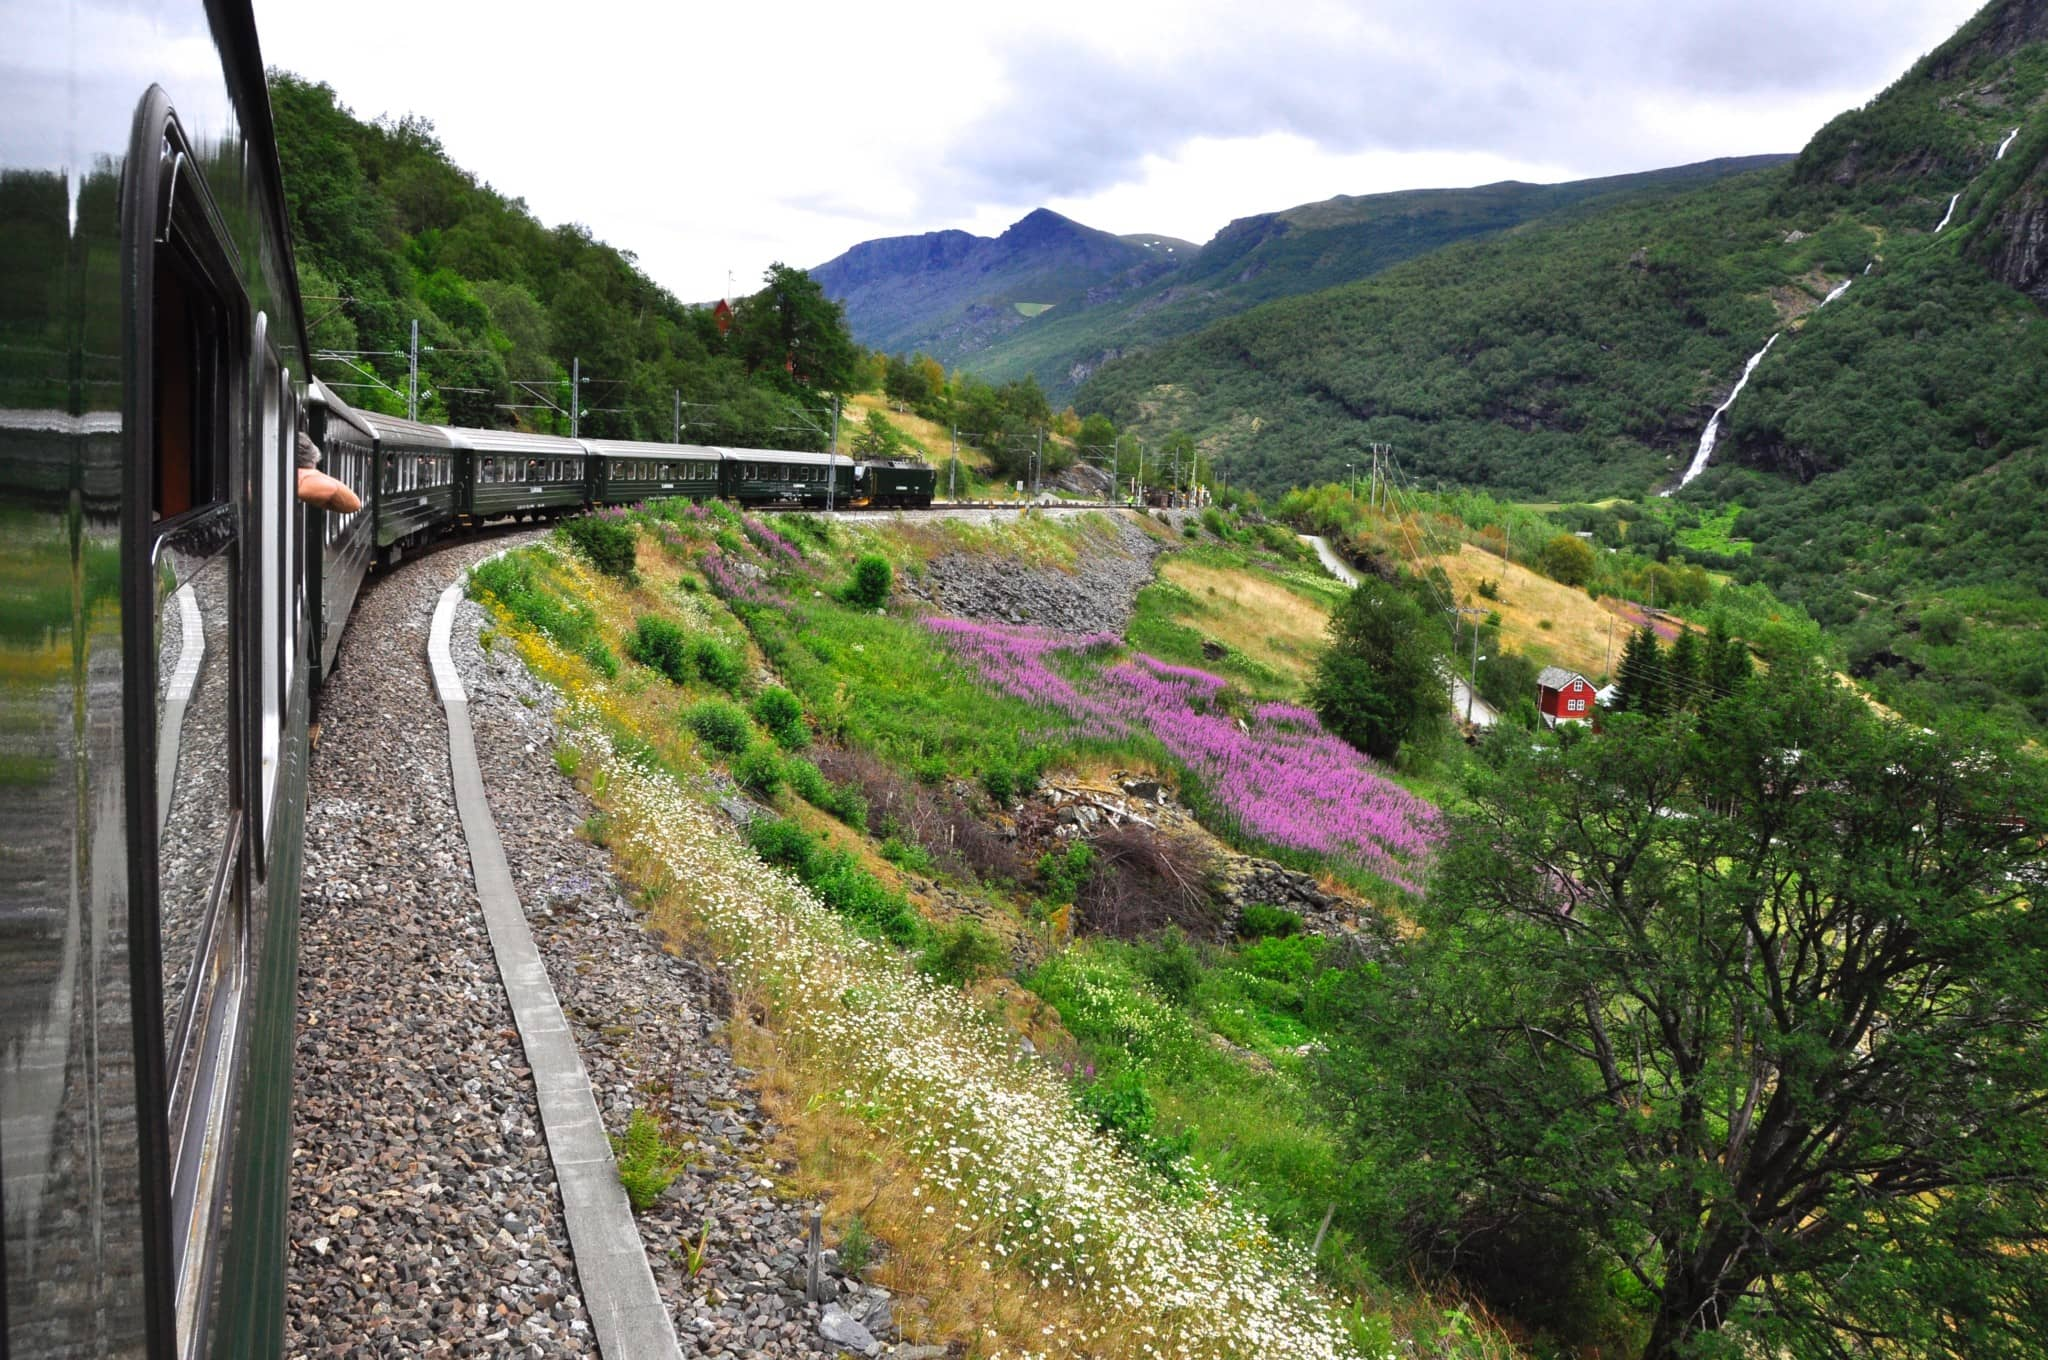 The train travels over the Hardangervidda plateau about 1300 meters above sea level and past Norway's most breathtaking places.